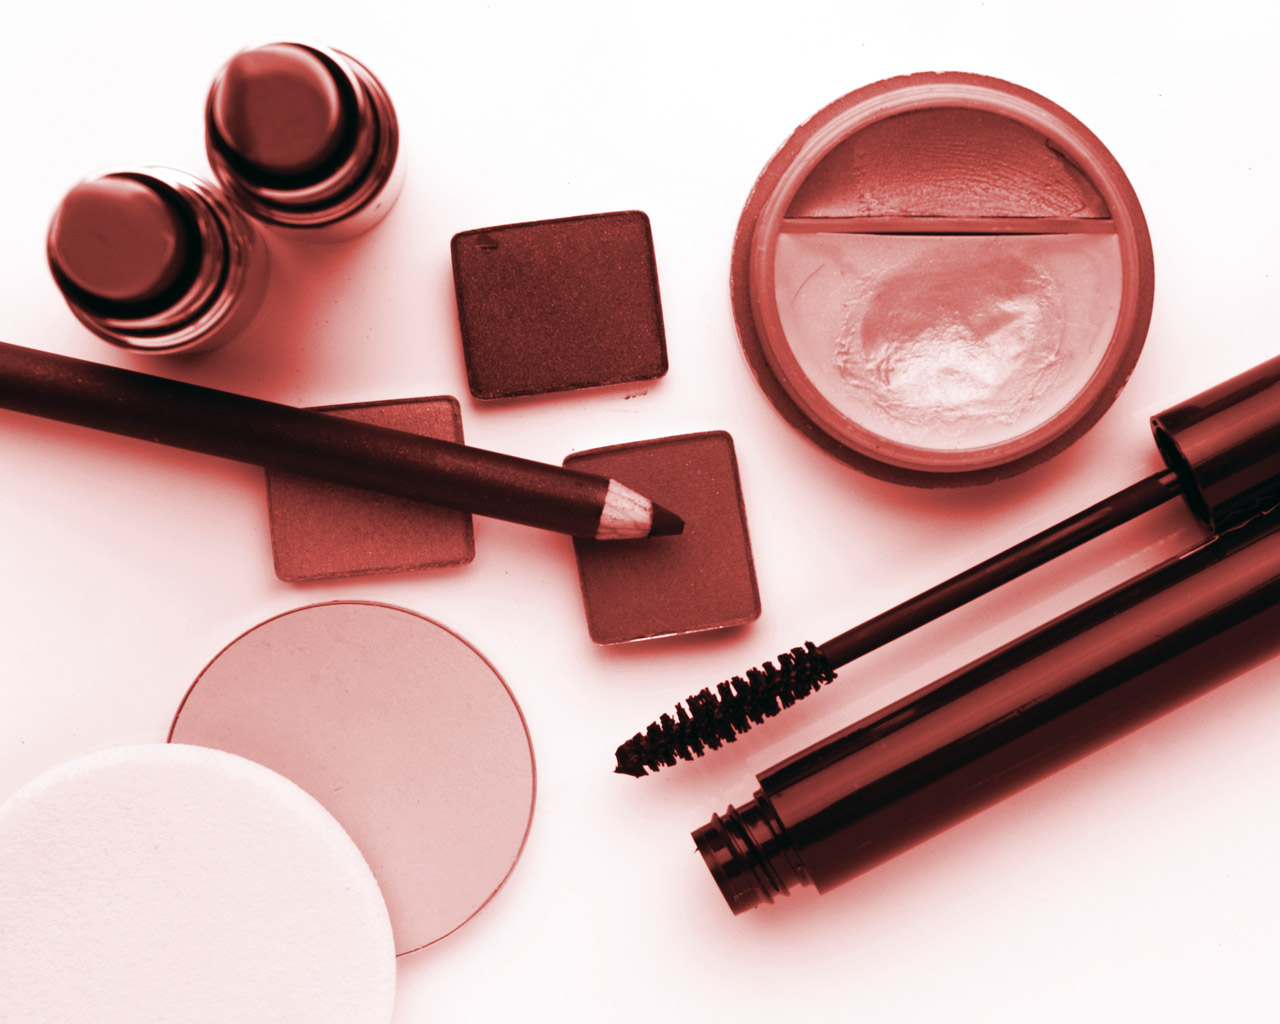 NIFDC published six call for comments on Cosmetics Issues